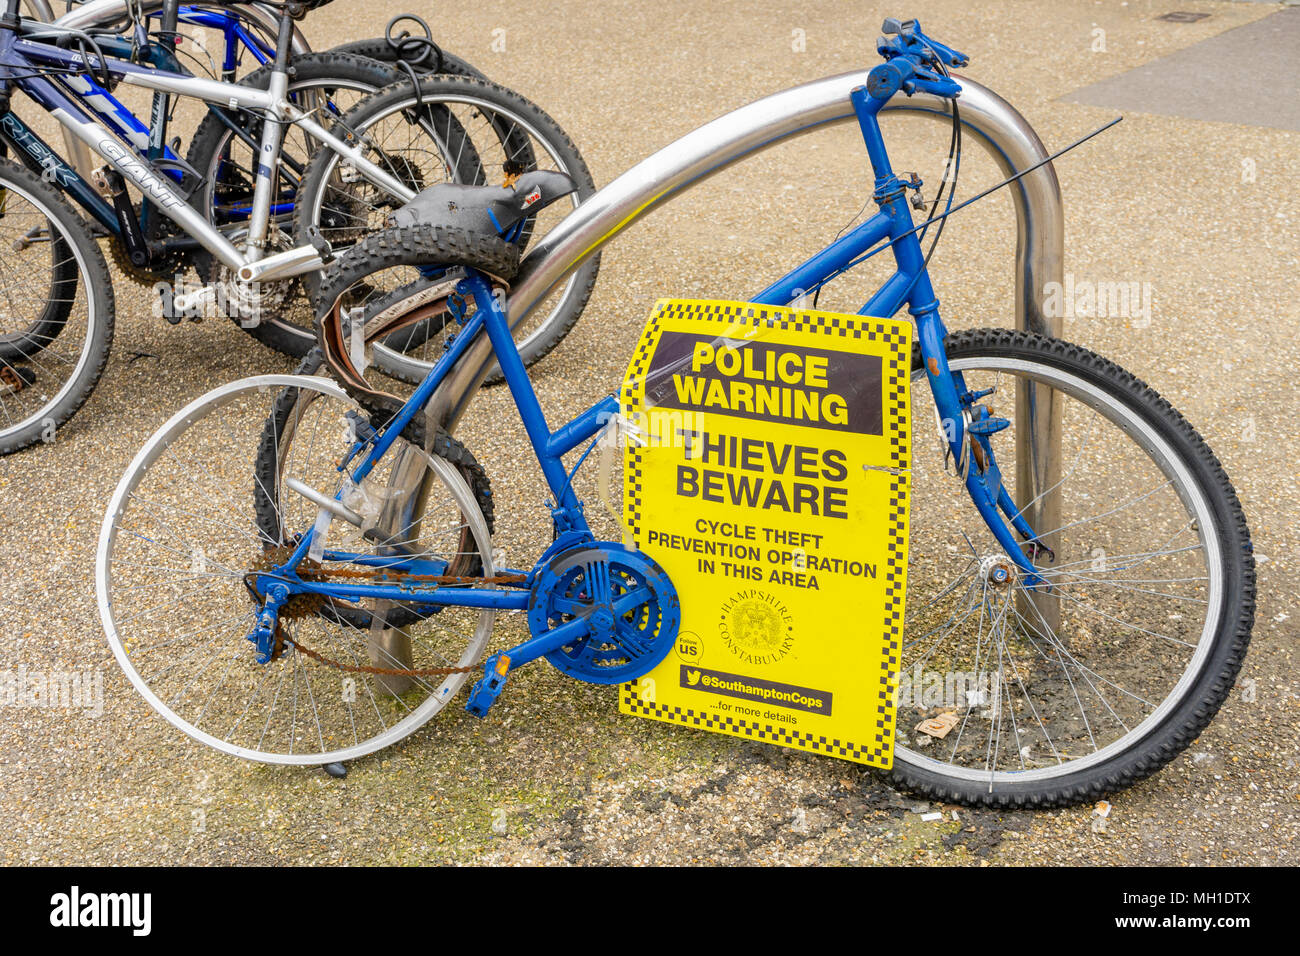 Blue dishevelled Bike on display in a street by Hampshire Constabulary with a police warning sign attached 'Thieves Beware' - Stock Image